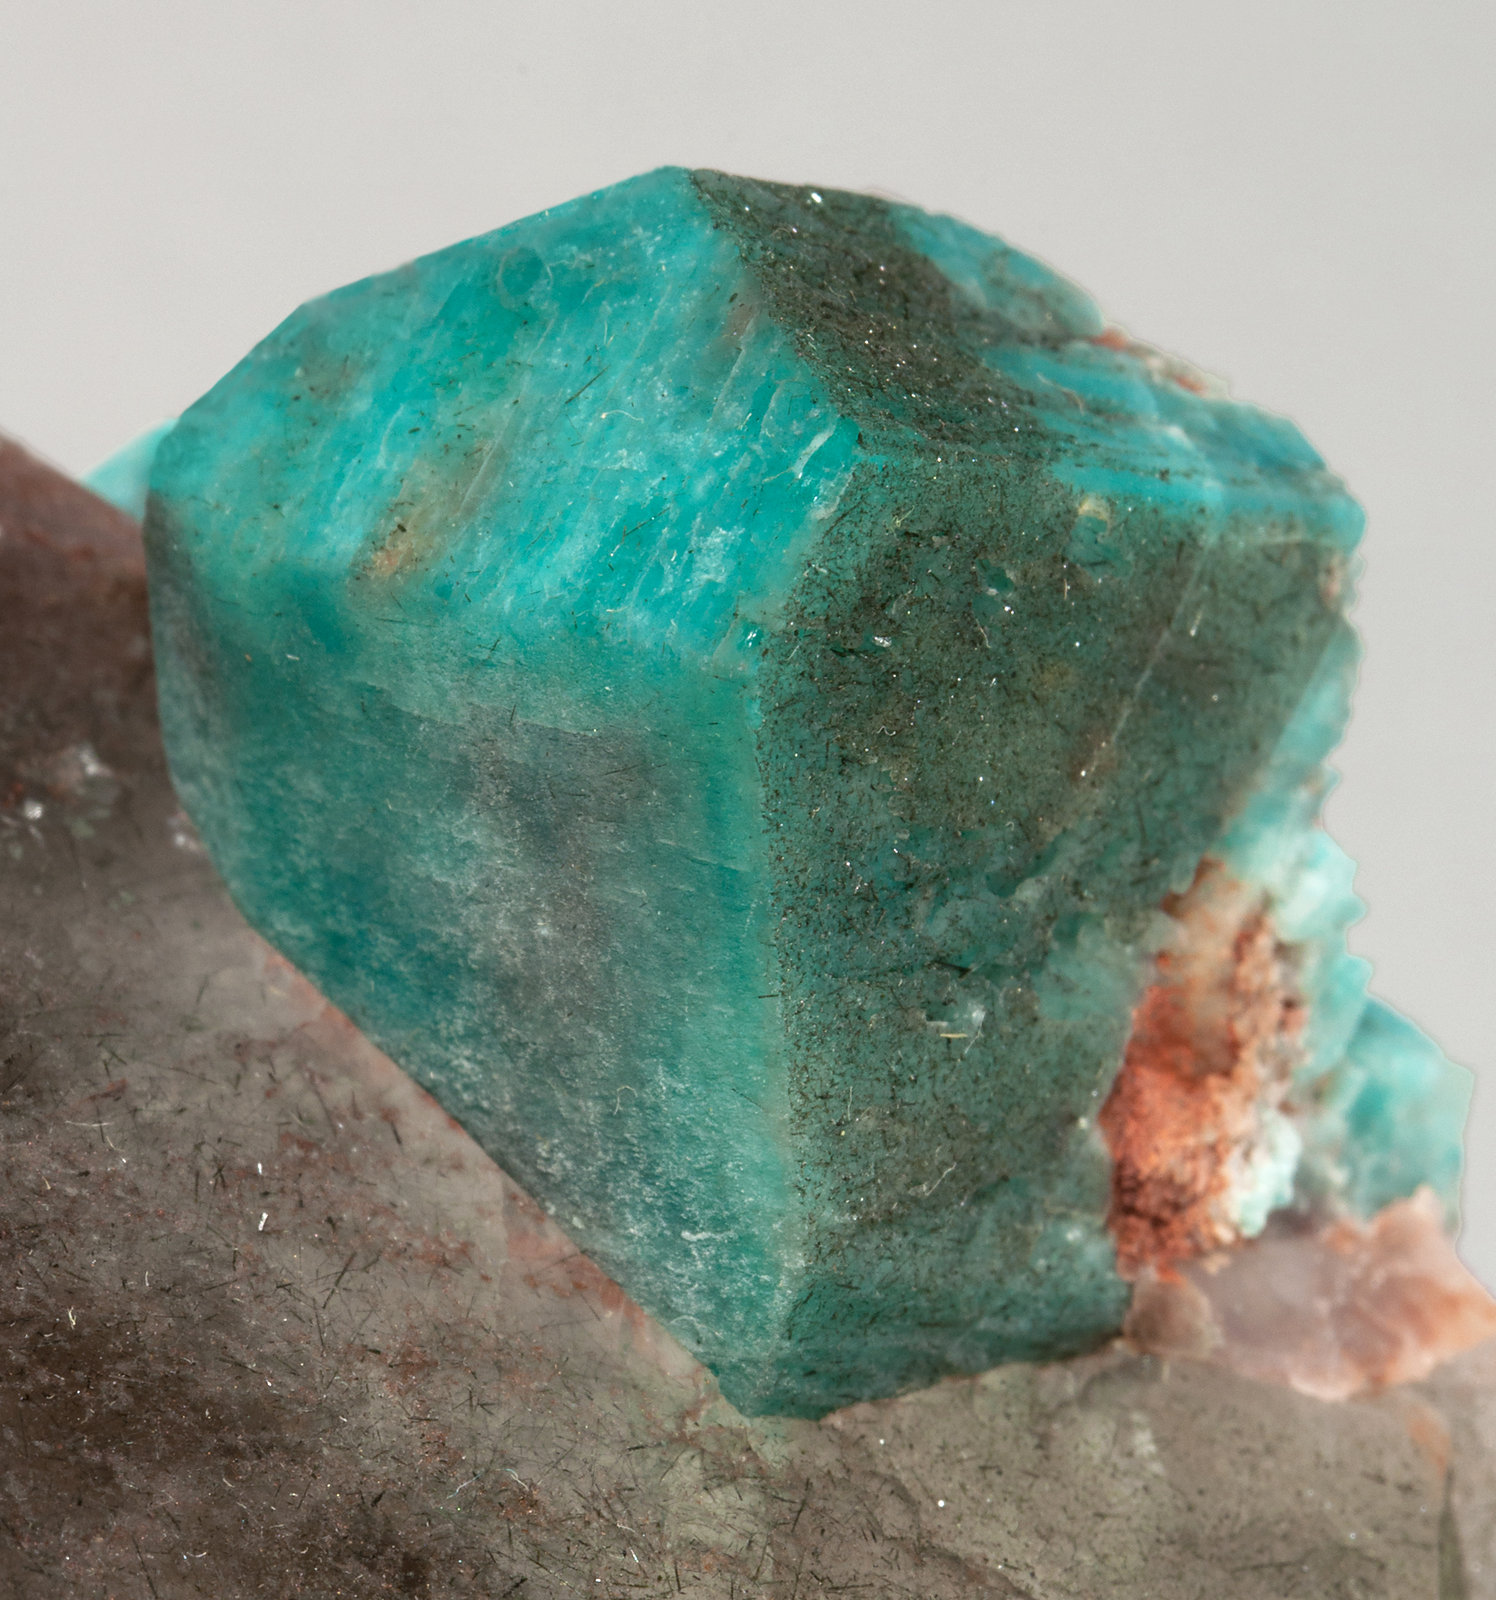 specimens/s_imagesX7/Amazonite-T96FKX7d1.jpg